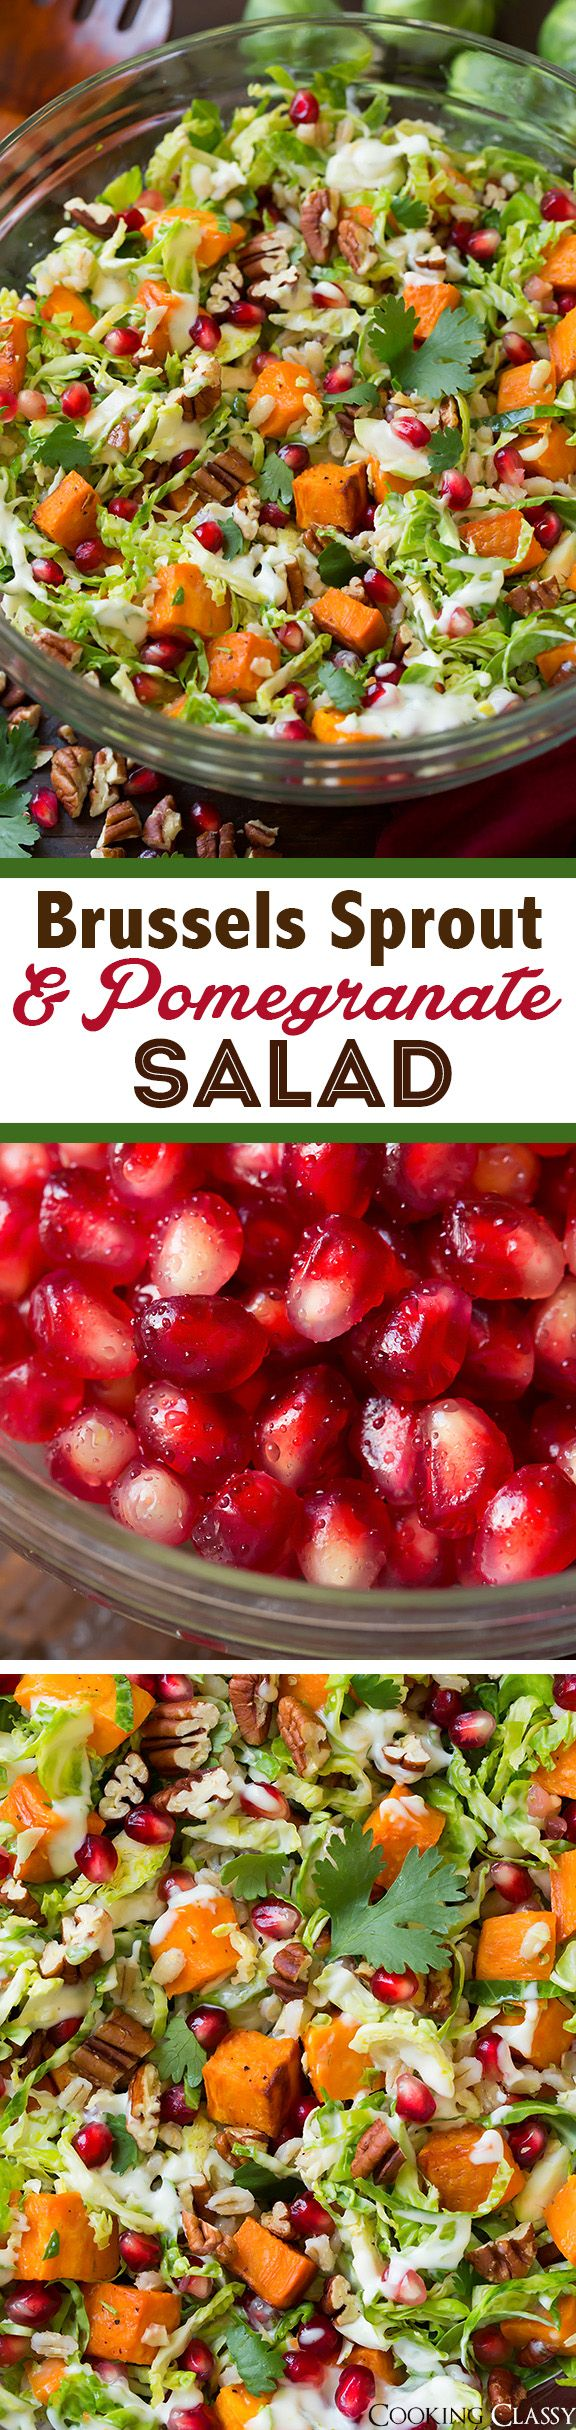 Shredded Brussels Sprout and Pomegranate Salad - loved all the flavors and textures in this salad! Definitely making this one again! #HelalthierSideOfMayo #Sponsored